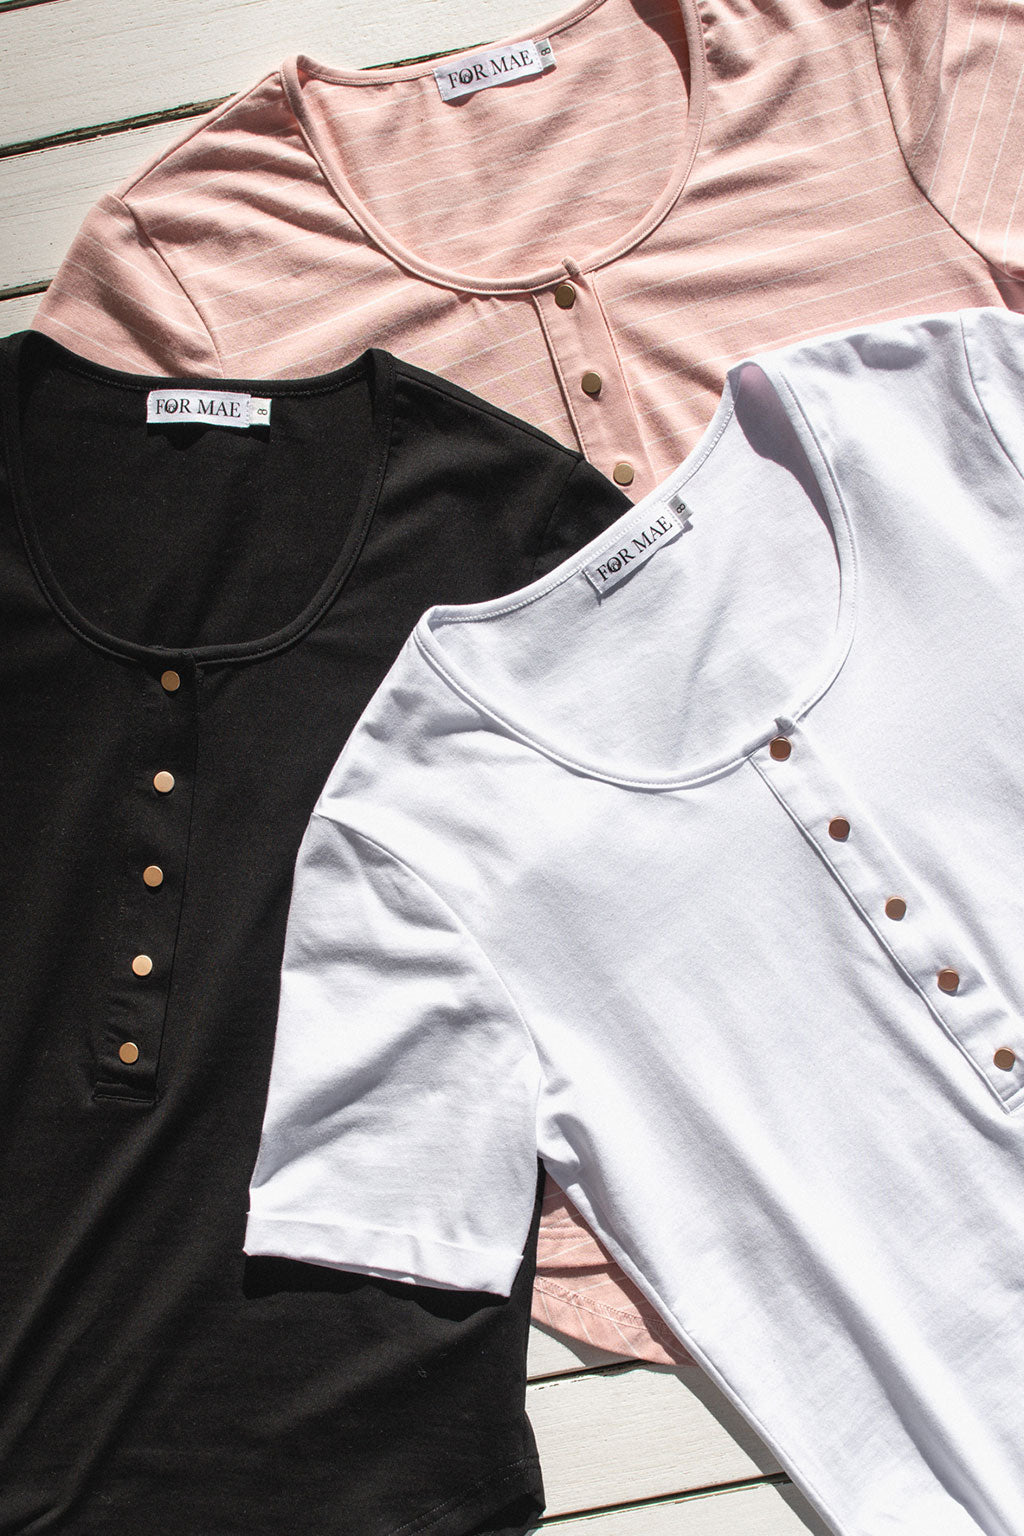 Brooke Short Sleeve Tee 3-Pack Bundle - Black, White, Blush Stripe